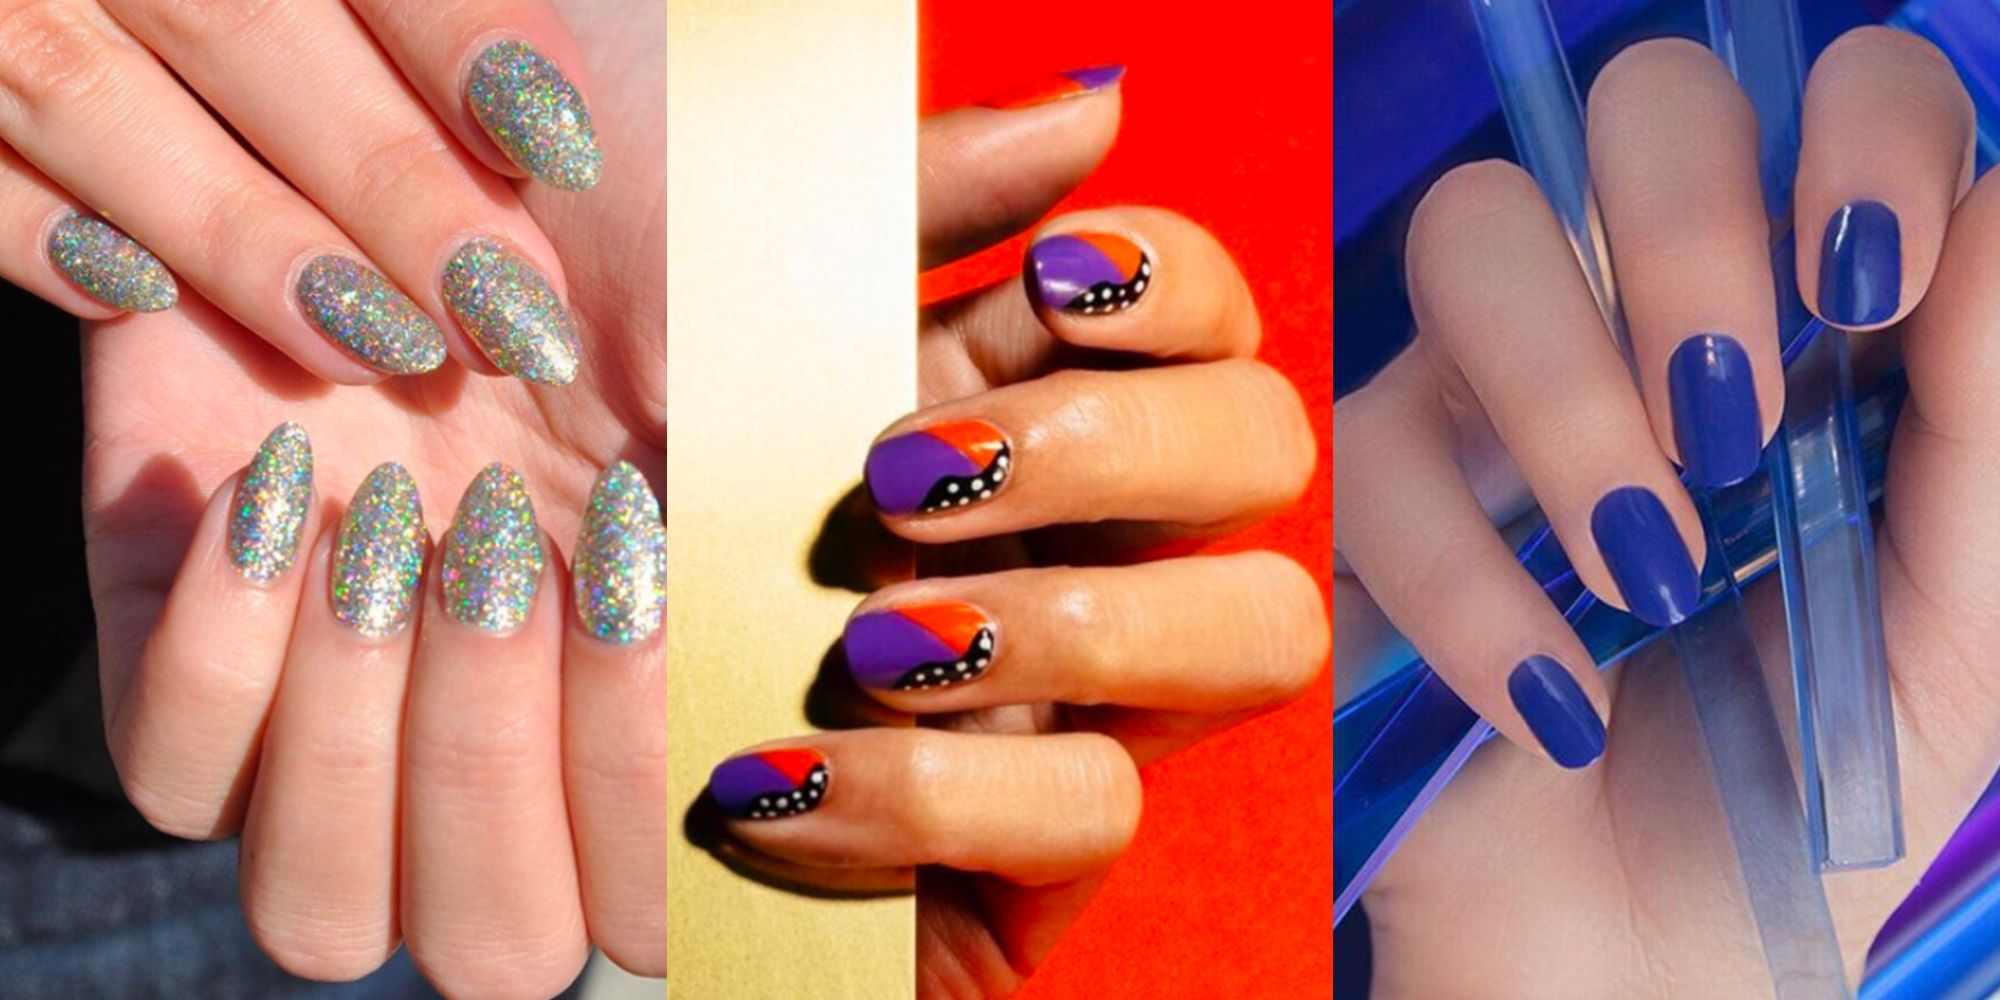 Hot Nail Trends for 2018 - Nail Color and Design Predictions for 2018